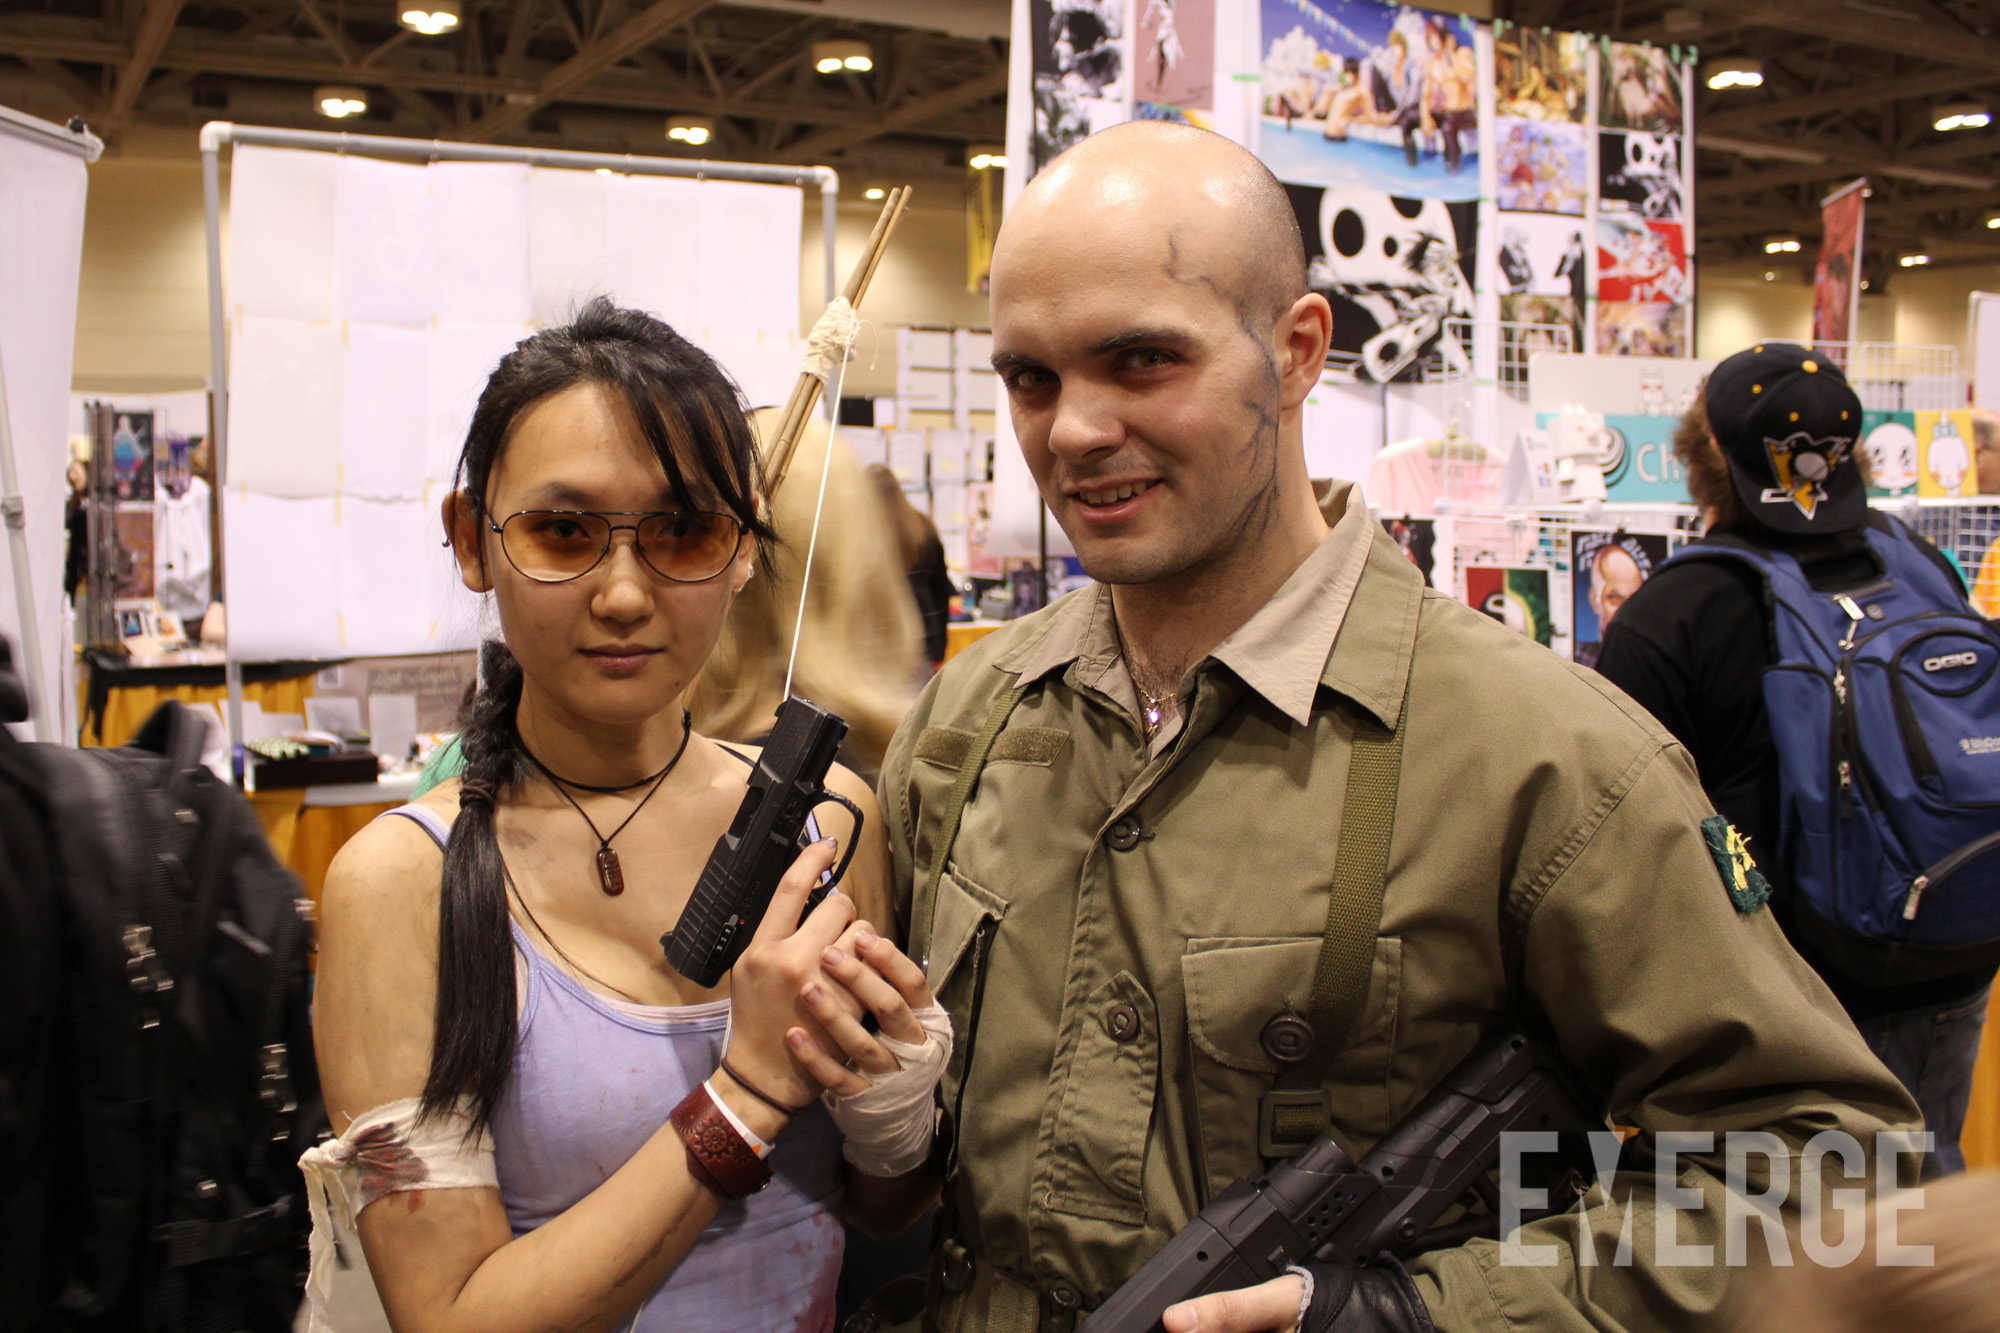 Lara Croft (Tomb Raider) and Anthony Hale (Resistance) taking a break from saving the world